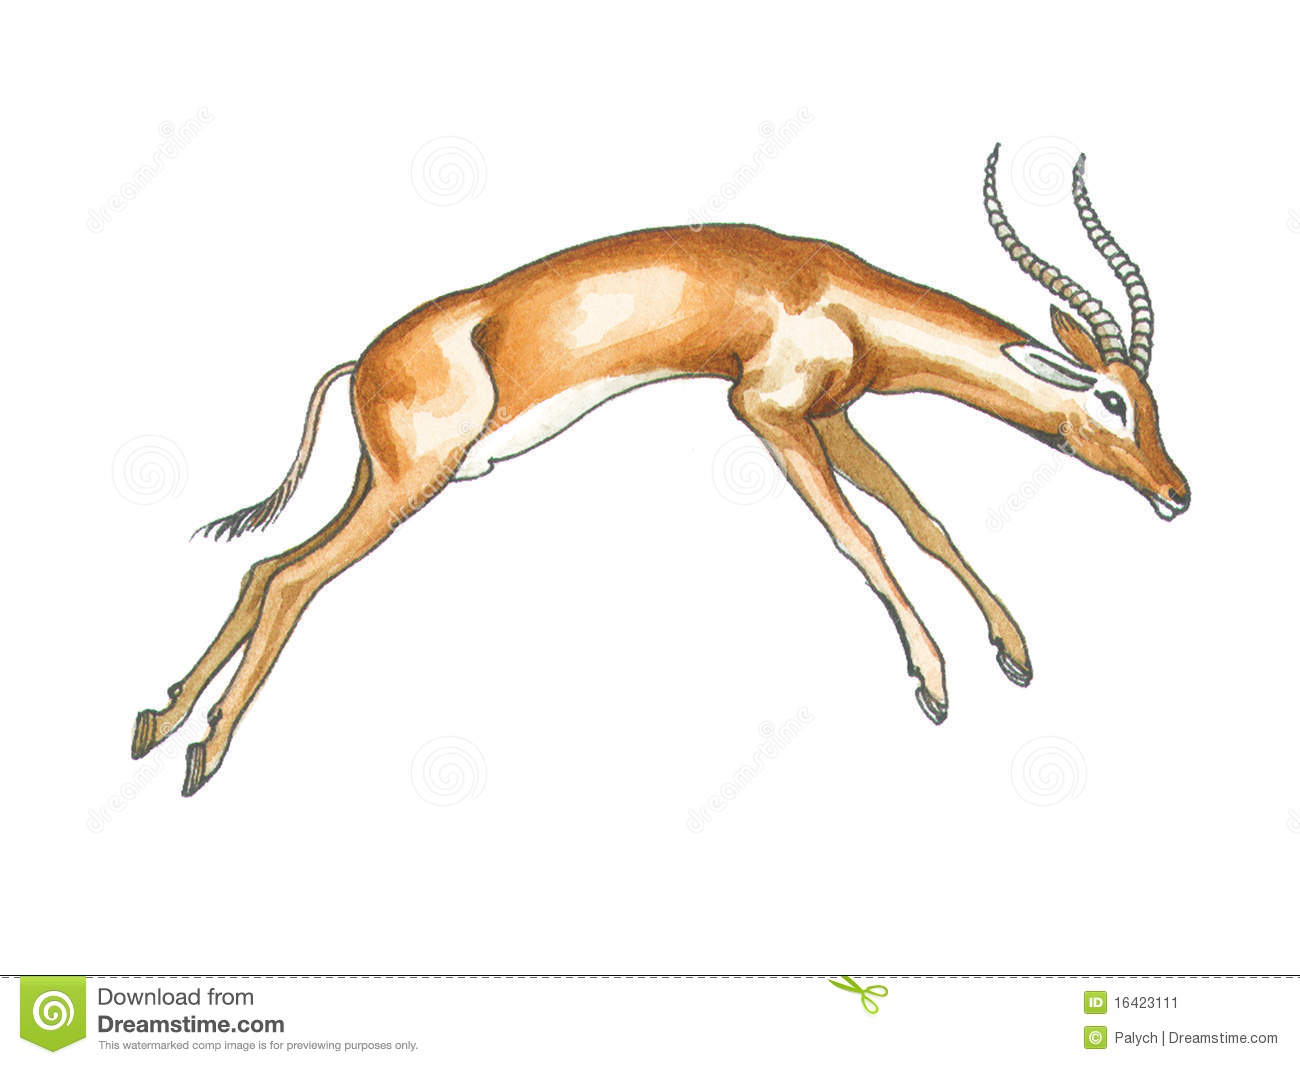 Impala clipart #10, Download drawings